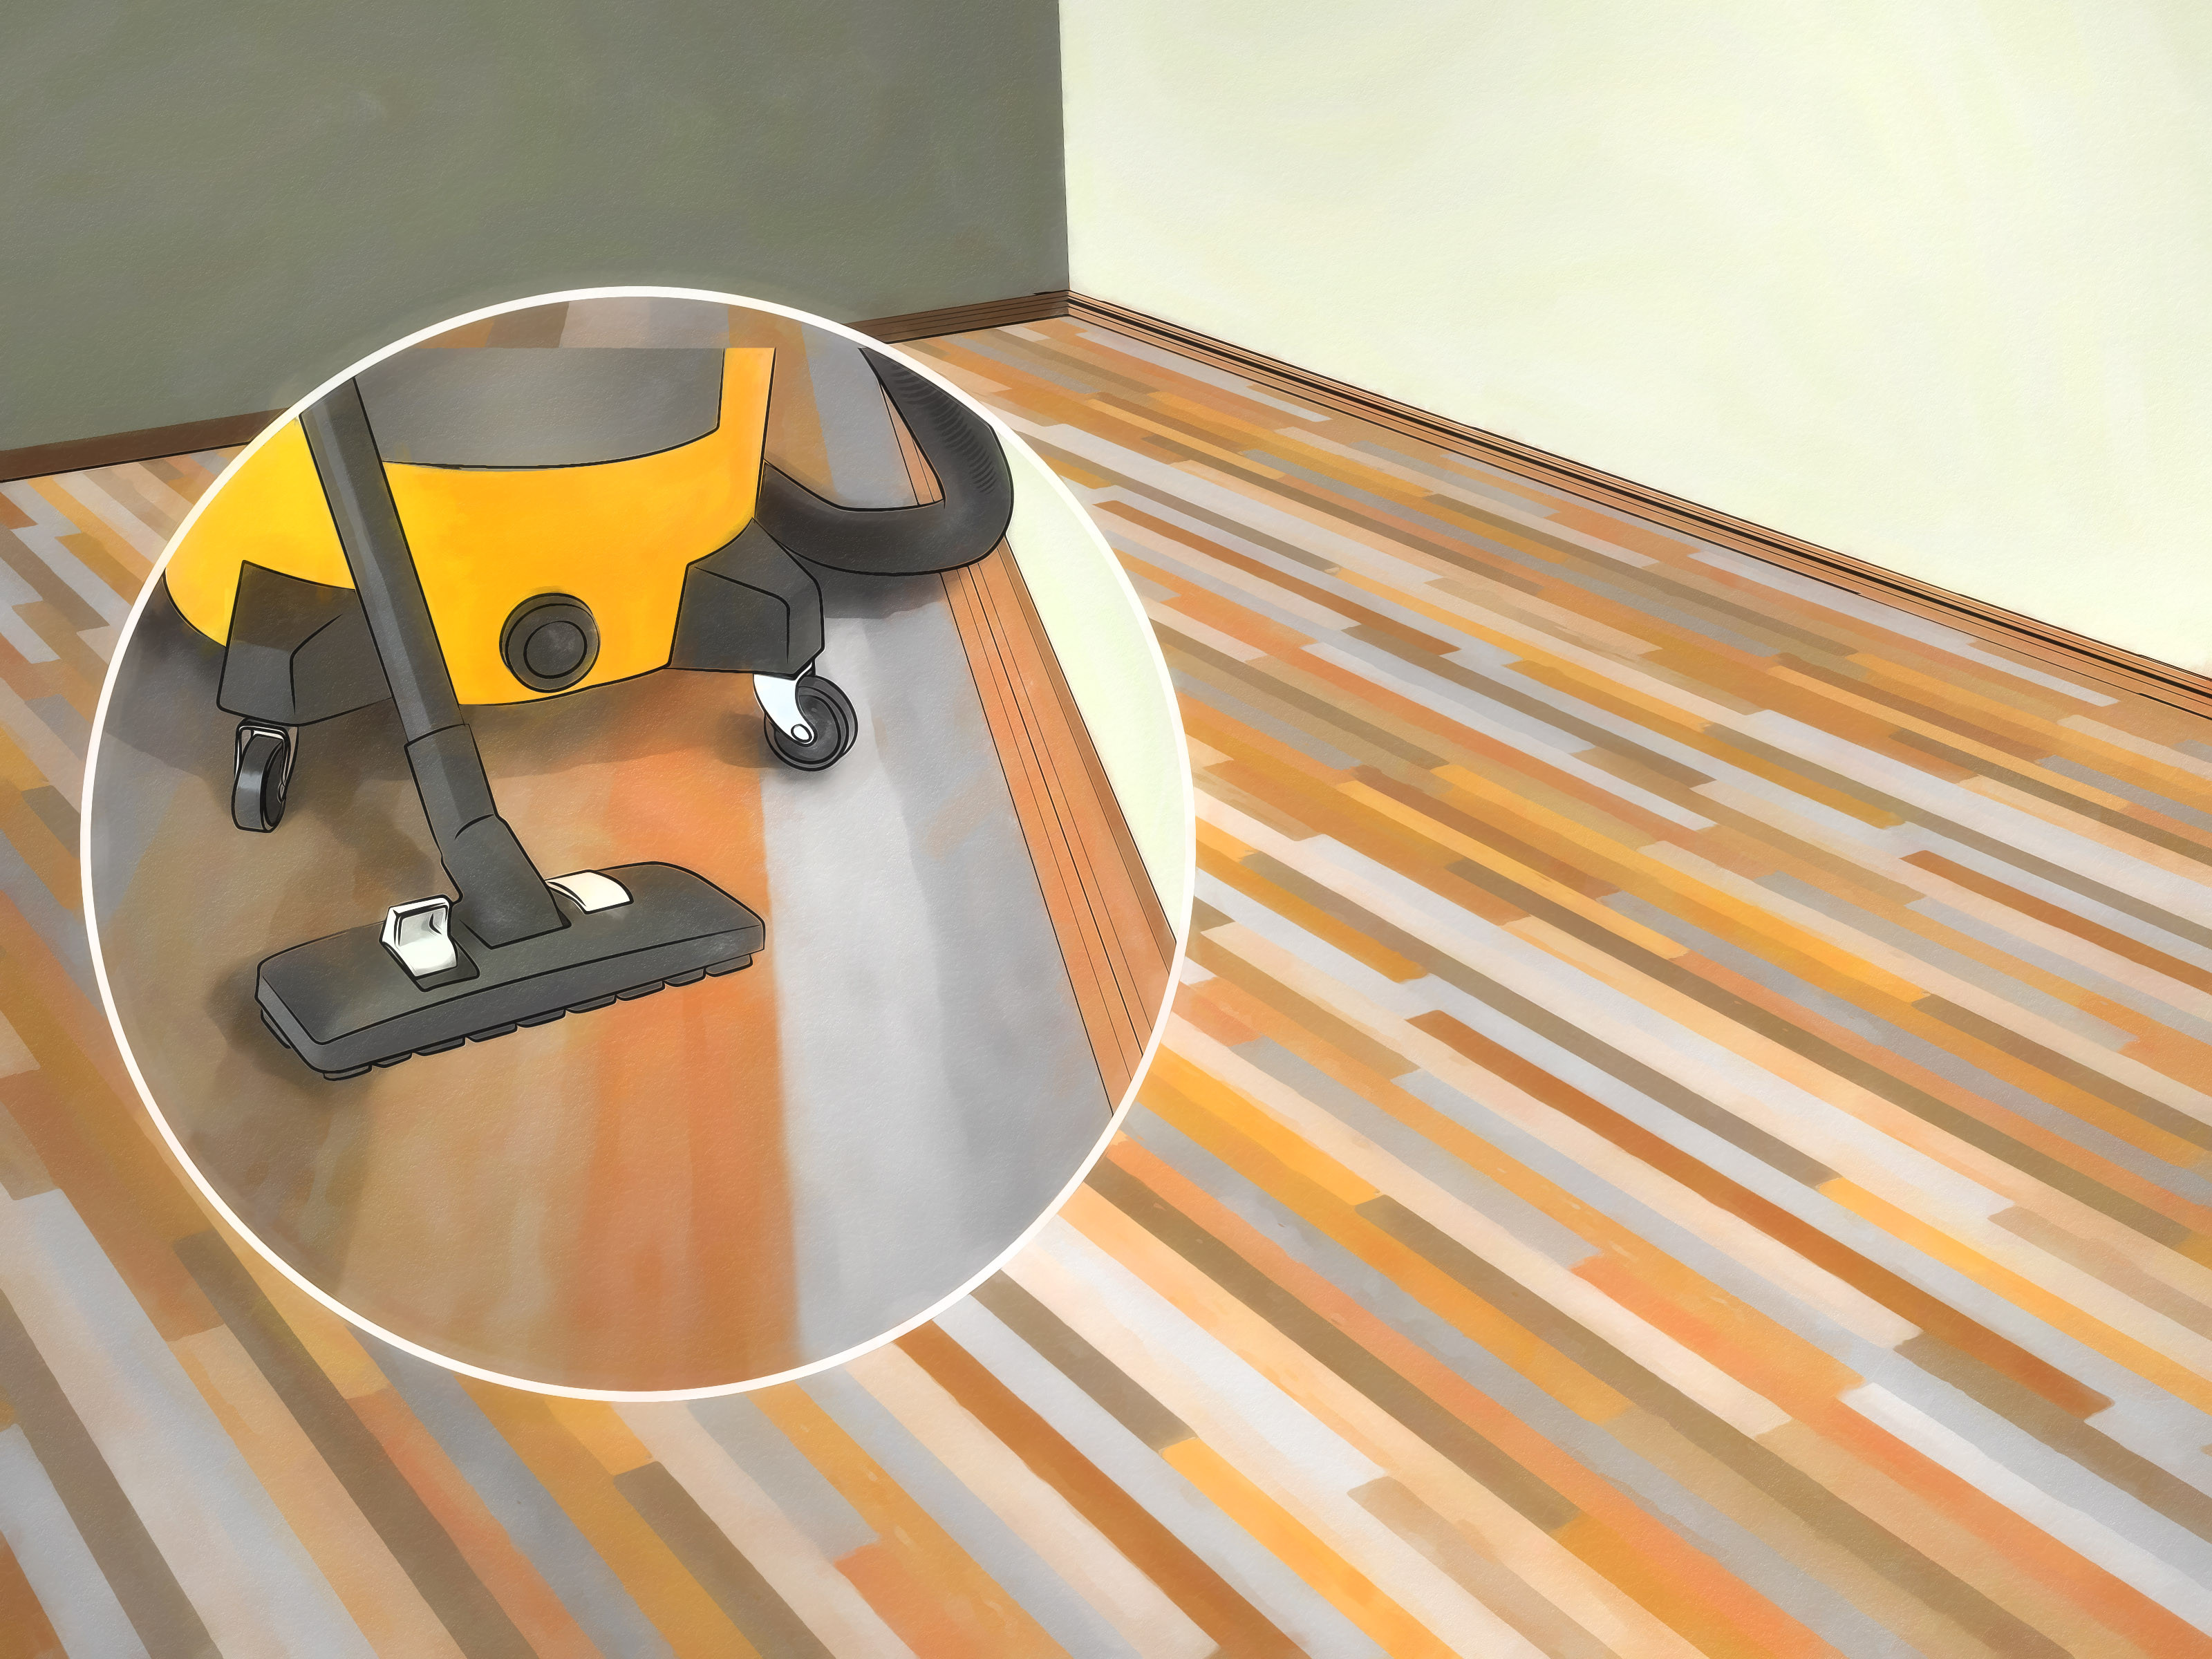 hardwood floor repair and refinishing of how to sand hardwood floors with pictures wikihow regarding sand hardwood floors step 22